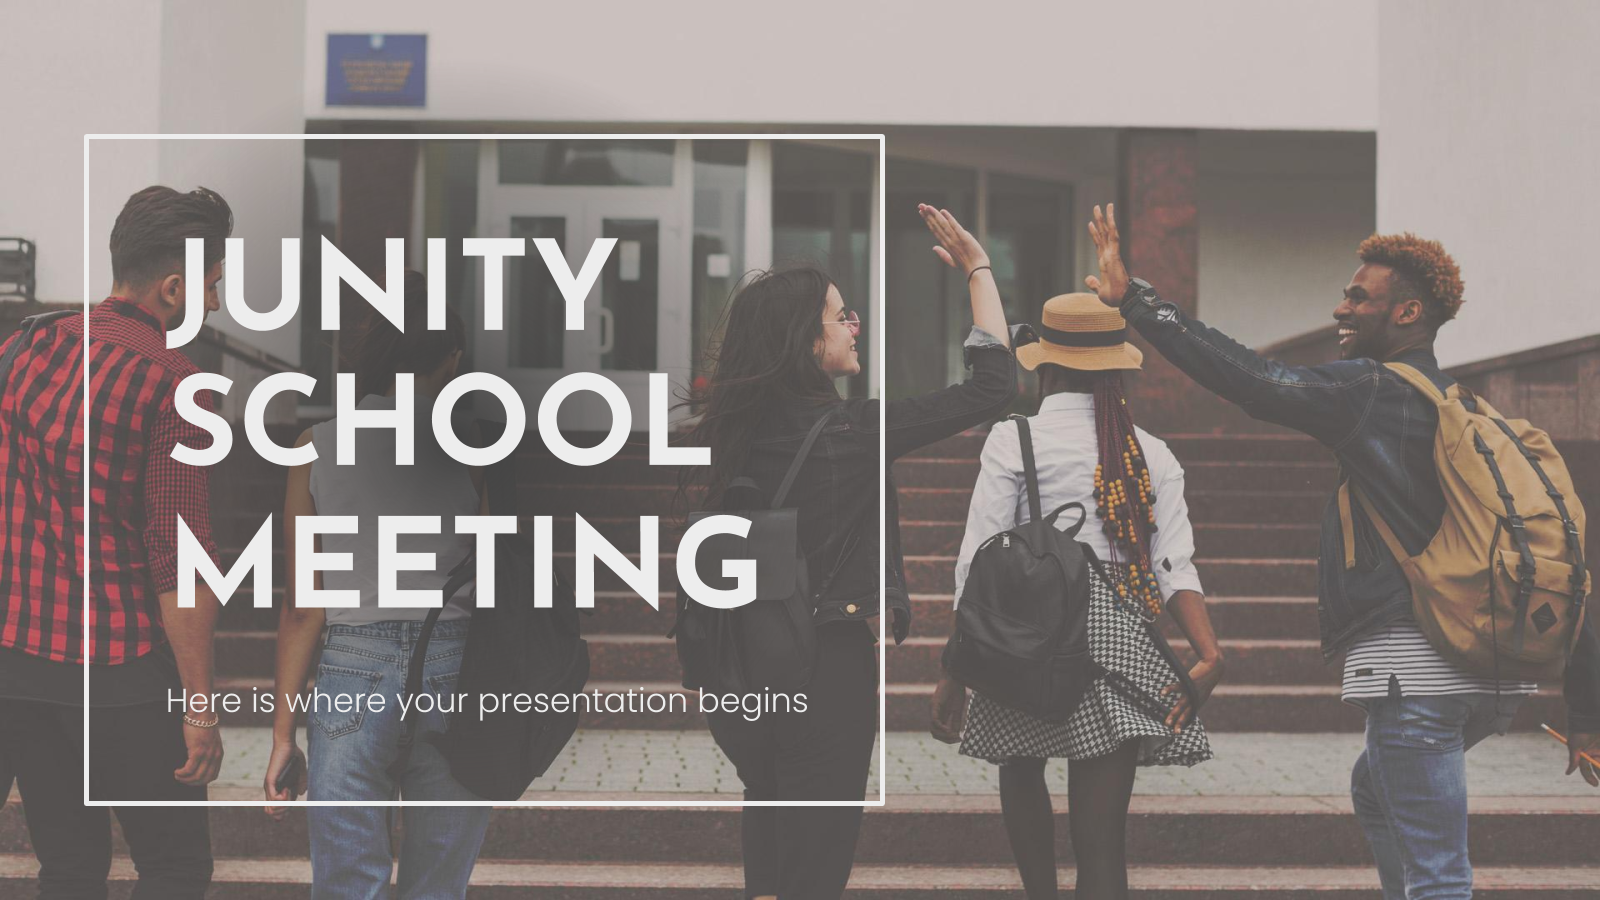 Junity School Meeting presentation template